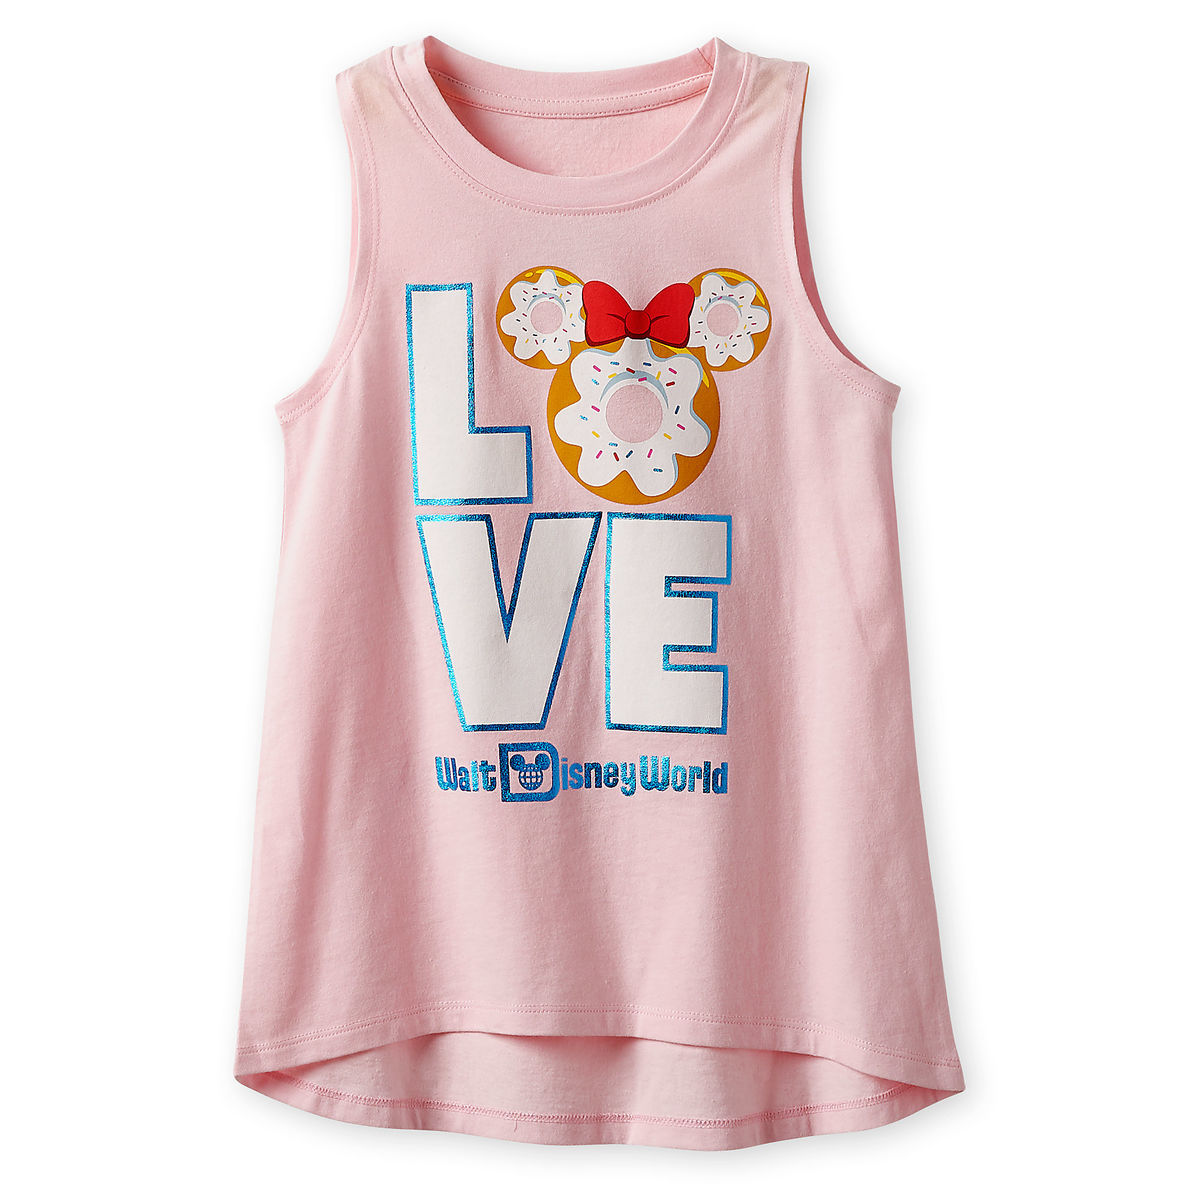 Disney Girl's Shirt - Minnie Mouse Donut Tank Top